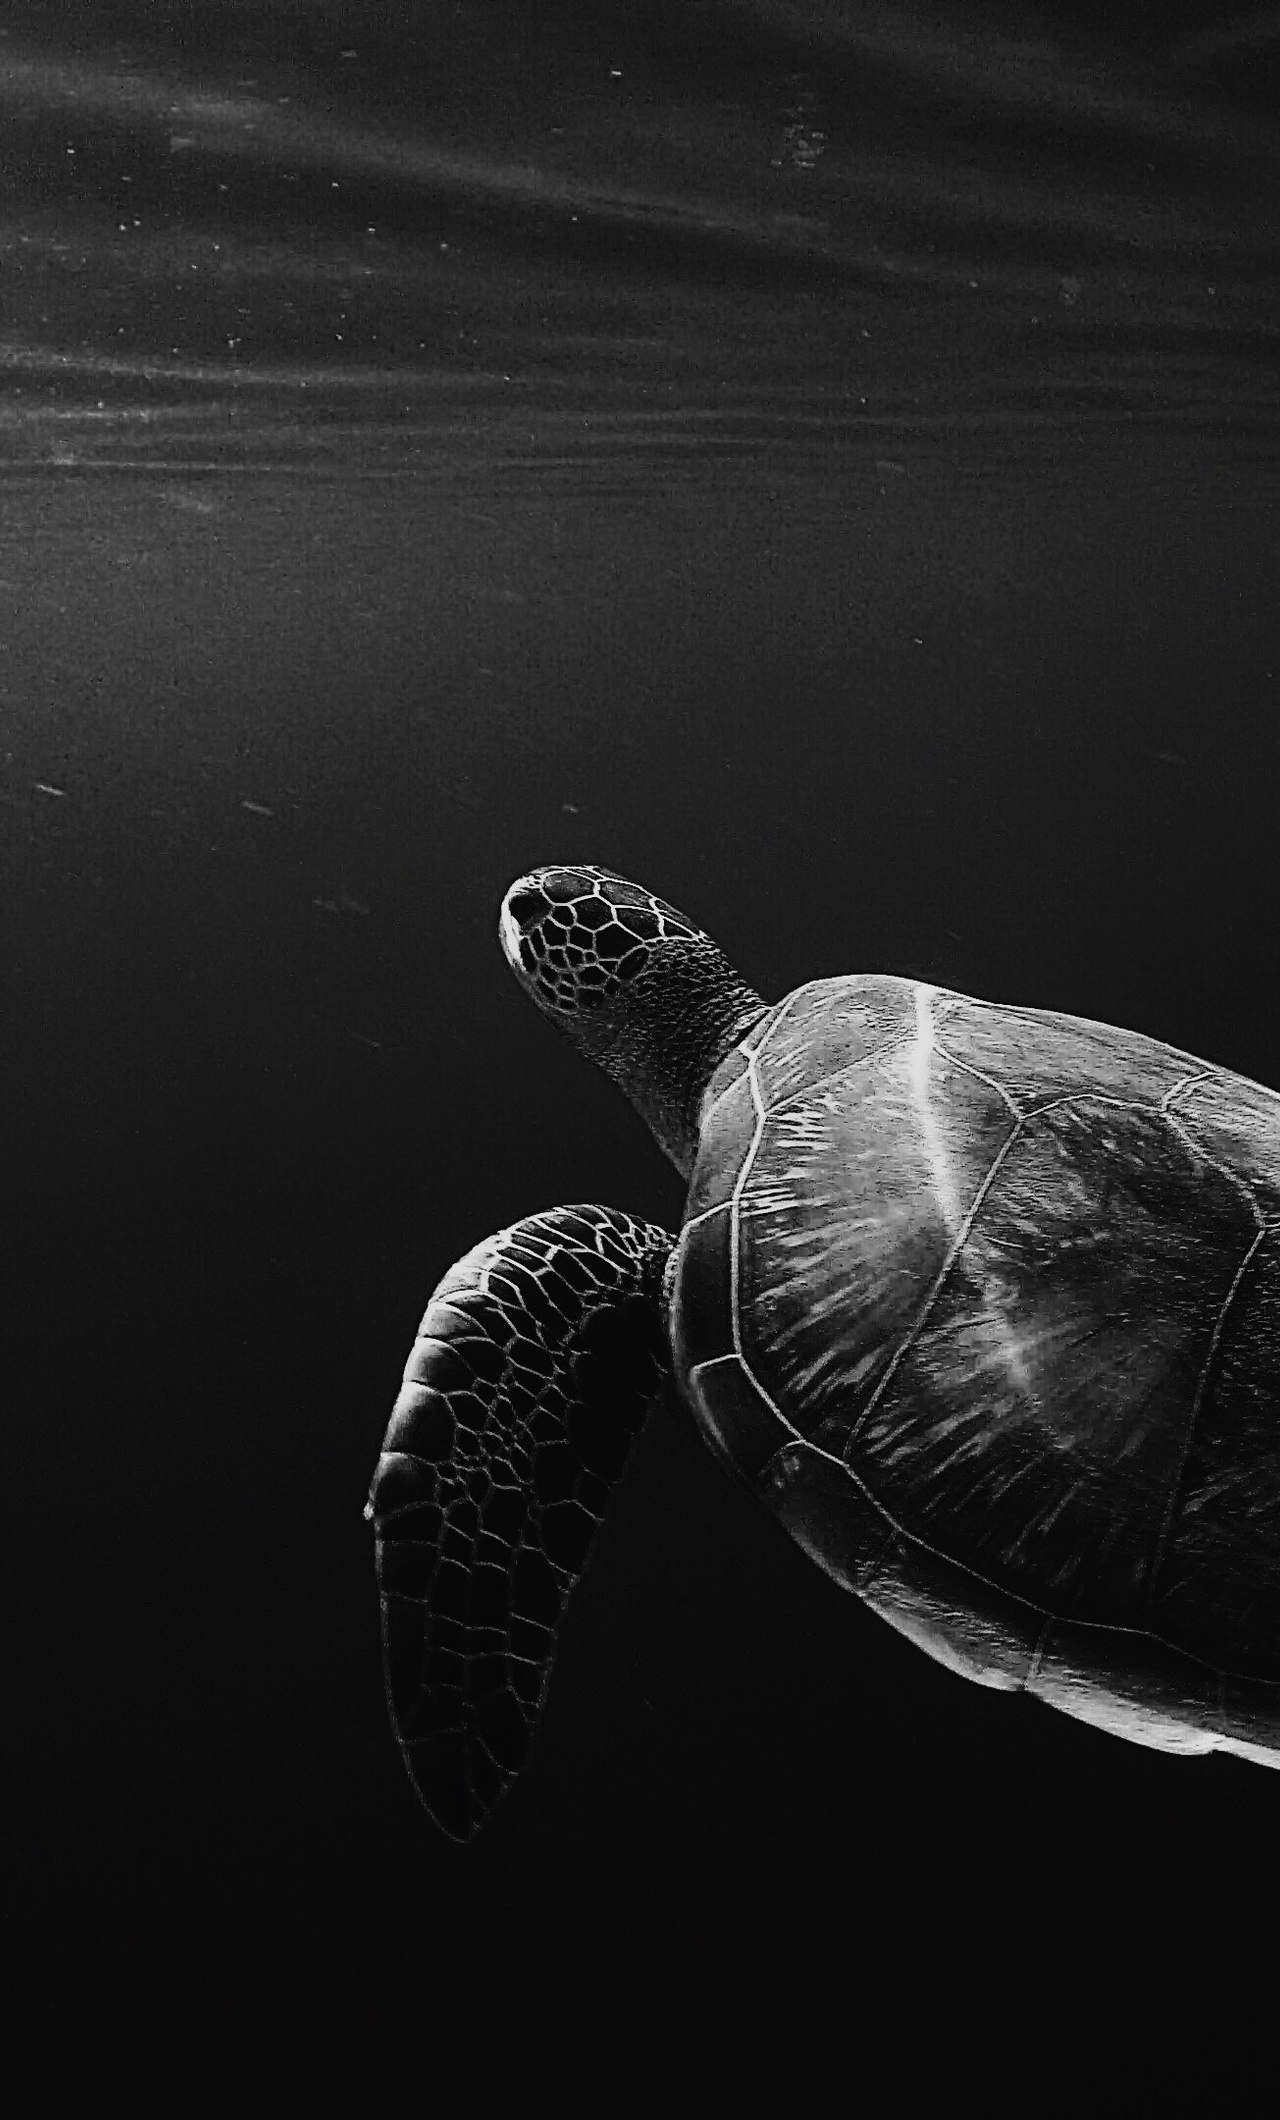 1280x2120 Turtle Oled 4k iPhone 6+ HD 4k Wallpapers ...